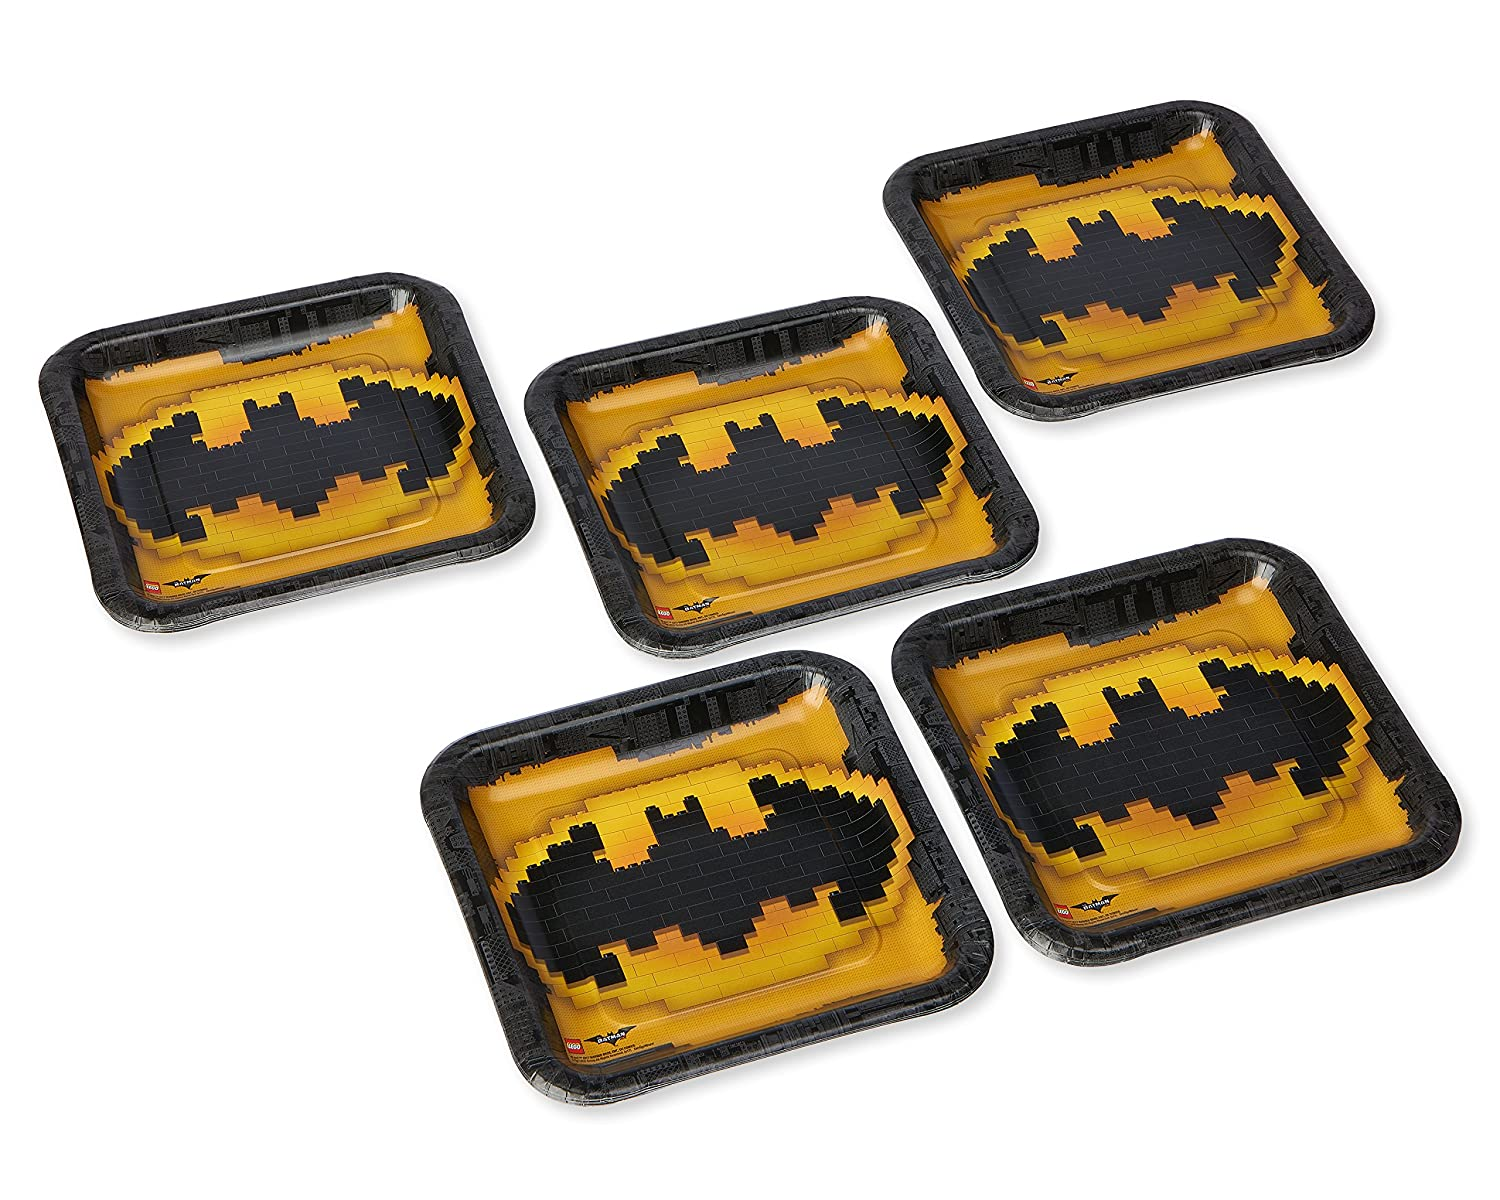 Lego Batman 16 oz Plastic Party Cup 12-Count American Greetings- Toys 5951856 American Greetings